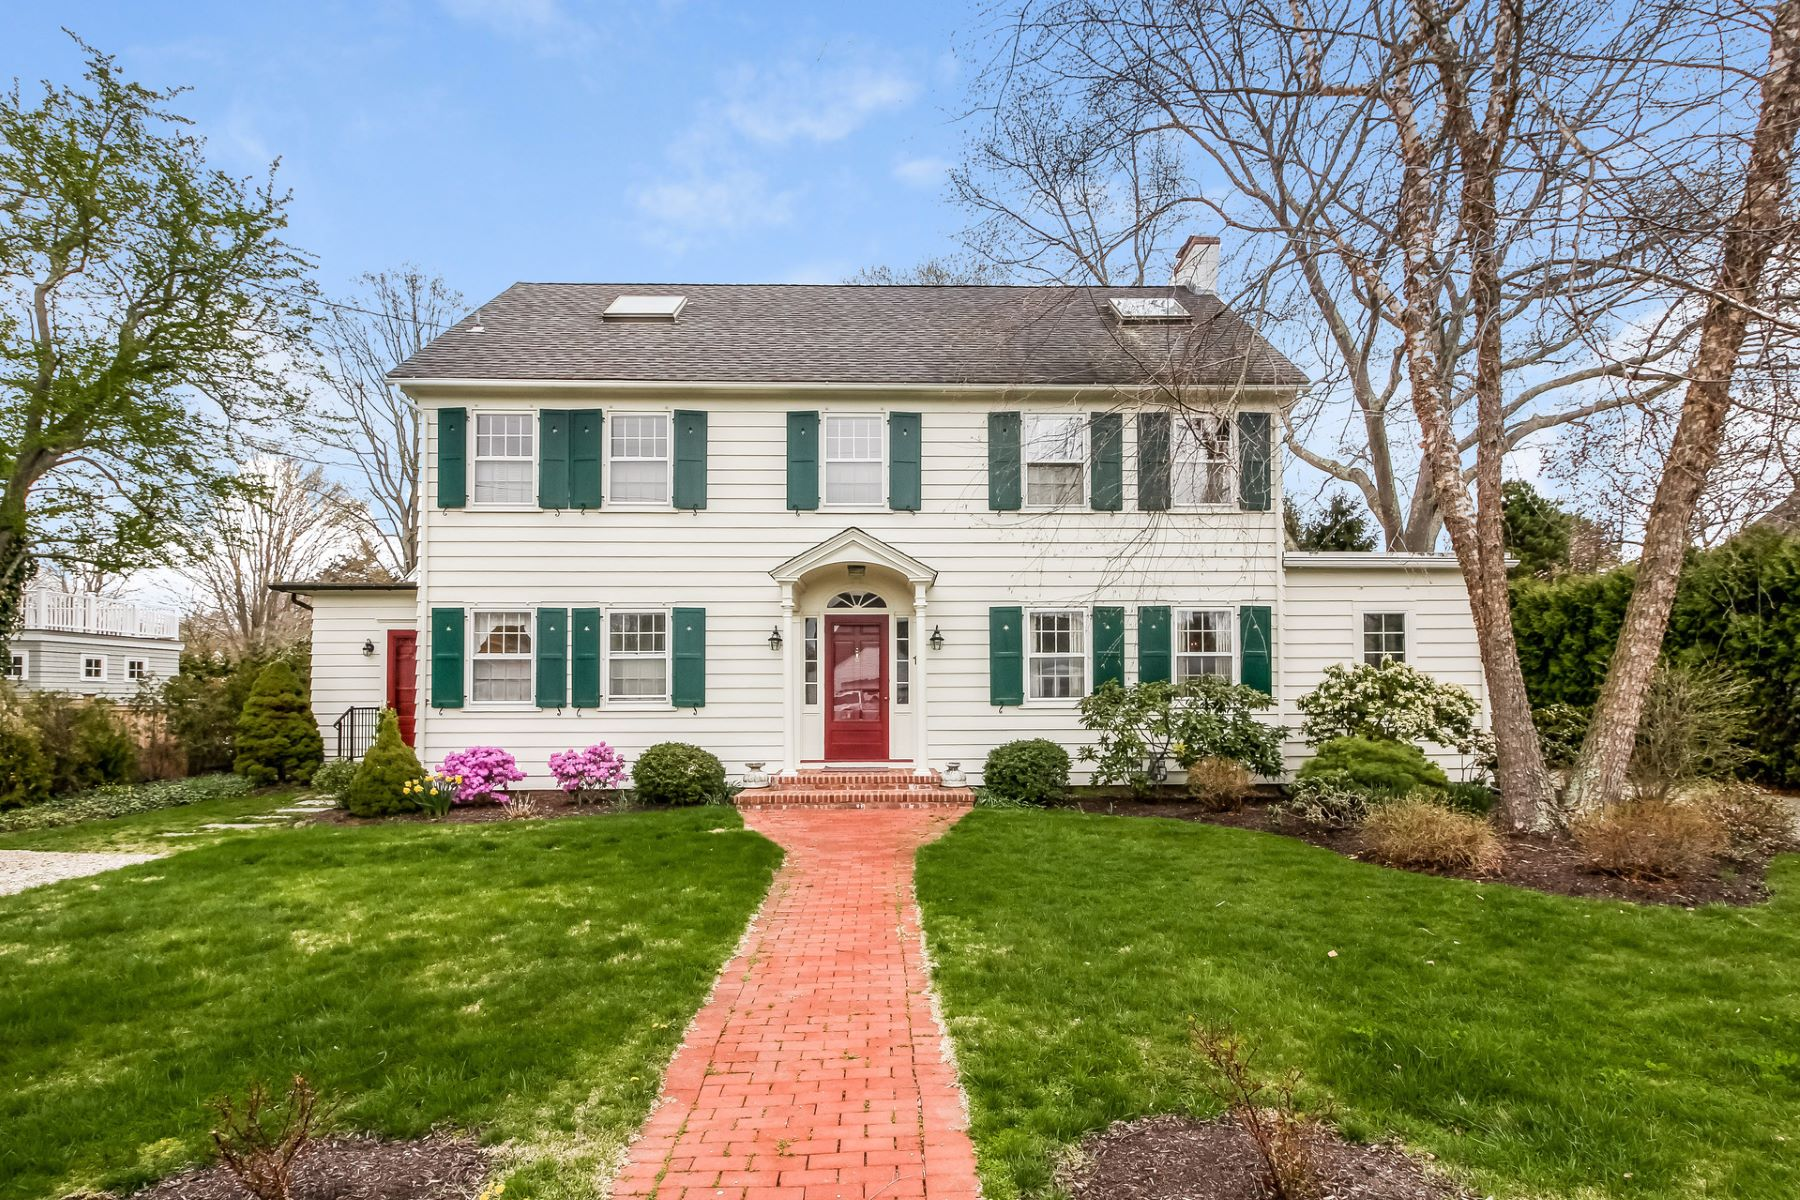 Casa Unifamiliar por un Venta en 11 Neptune Ave Madison, Connecticut, 06443 Estados Unidos